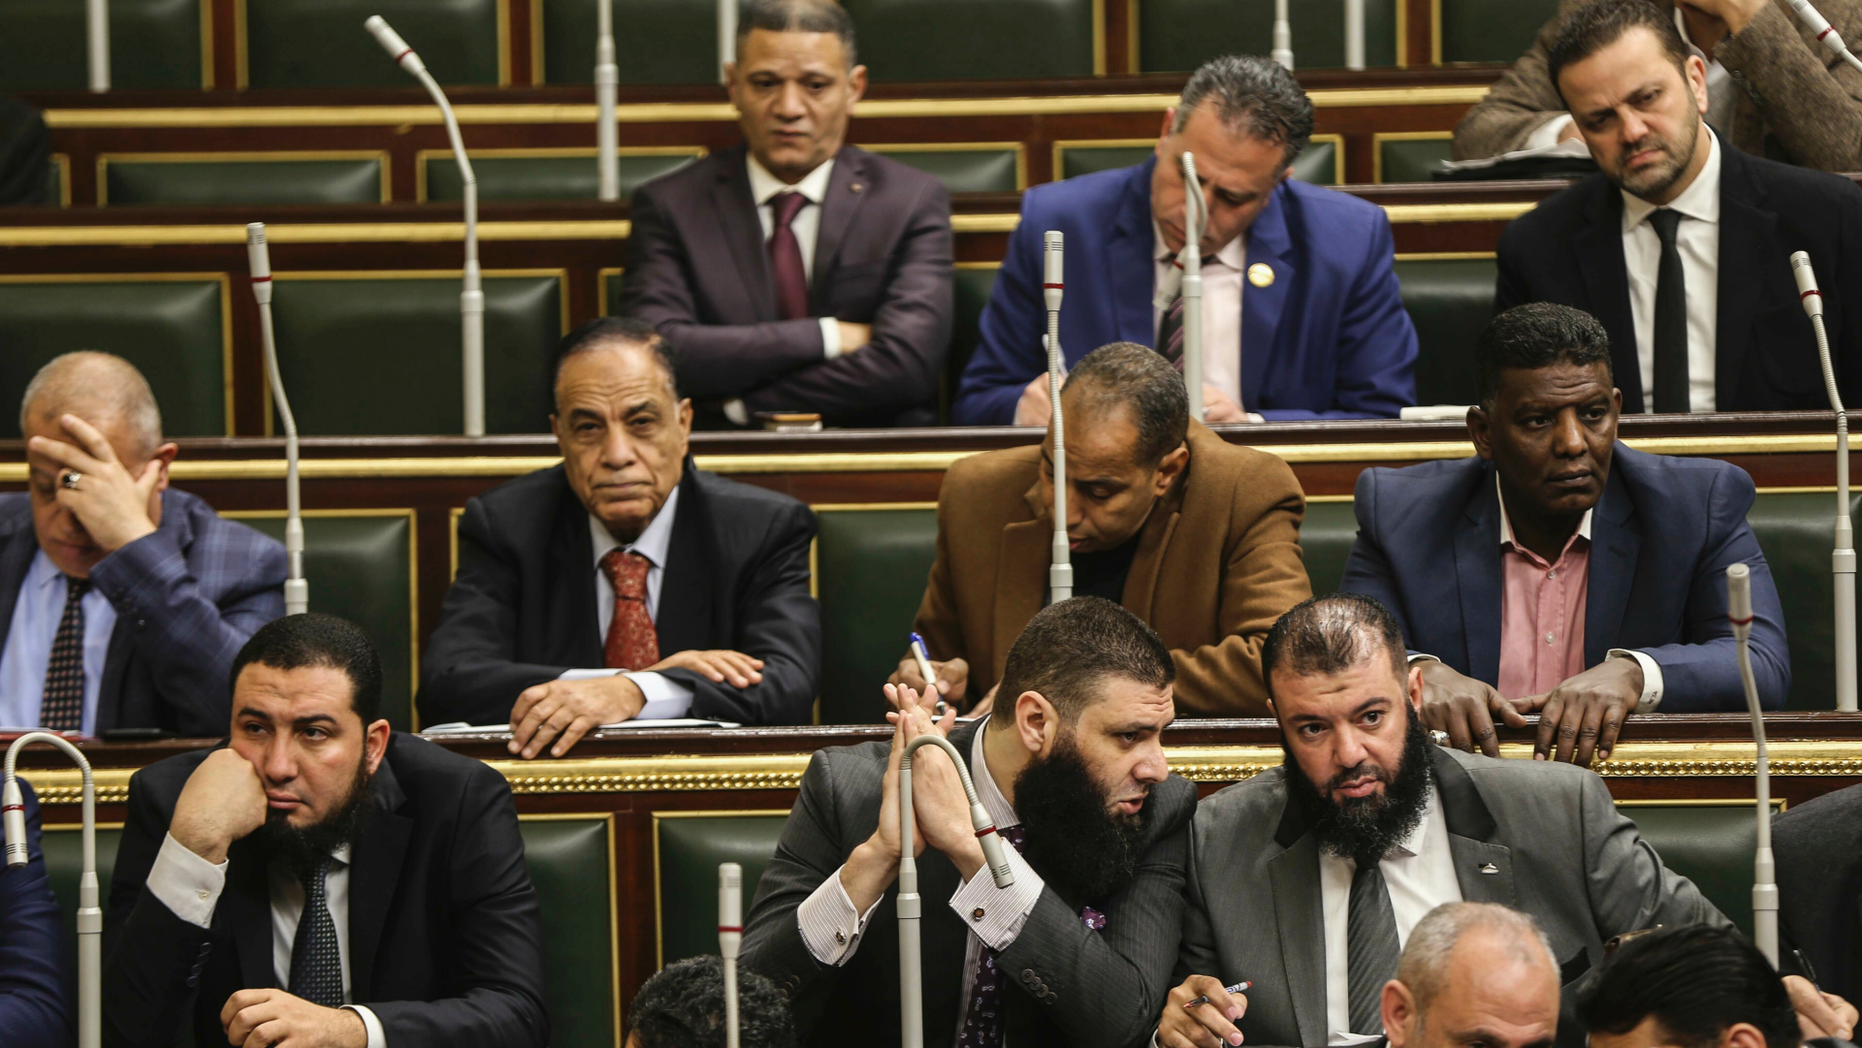 Members of Egypt's Parliament meet to deliberate constitutional amendments that could allow President Abdel-Fattah el-Sissi to stay in office till 2034, in Cairo Egypt, Wednesday, Feb 13, 2019. Wednesday's session will lead to a vote later in the evening or on Thursday, after which the text of the amendments would be finalized by a special committee for a final decision within two months. El-Sissi's current second term expires in 2022. (AP Photo)